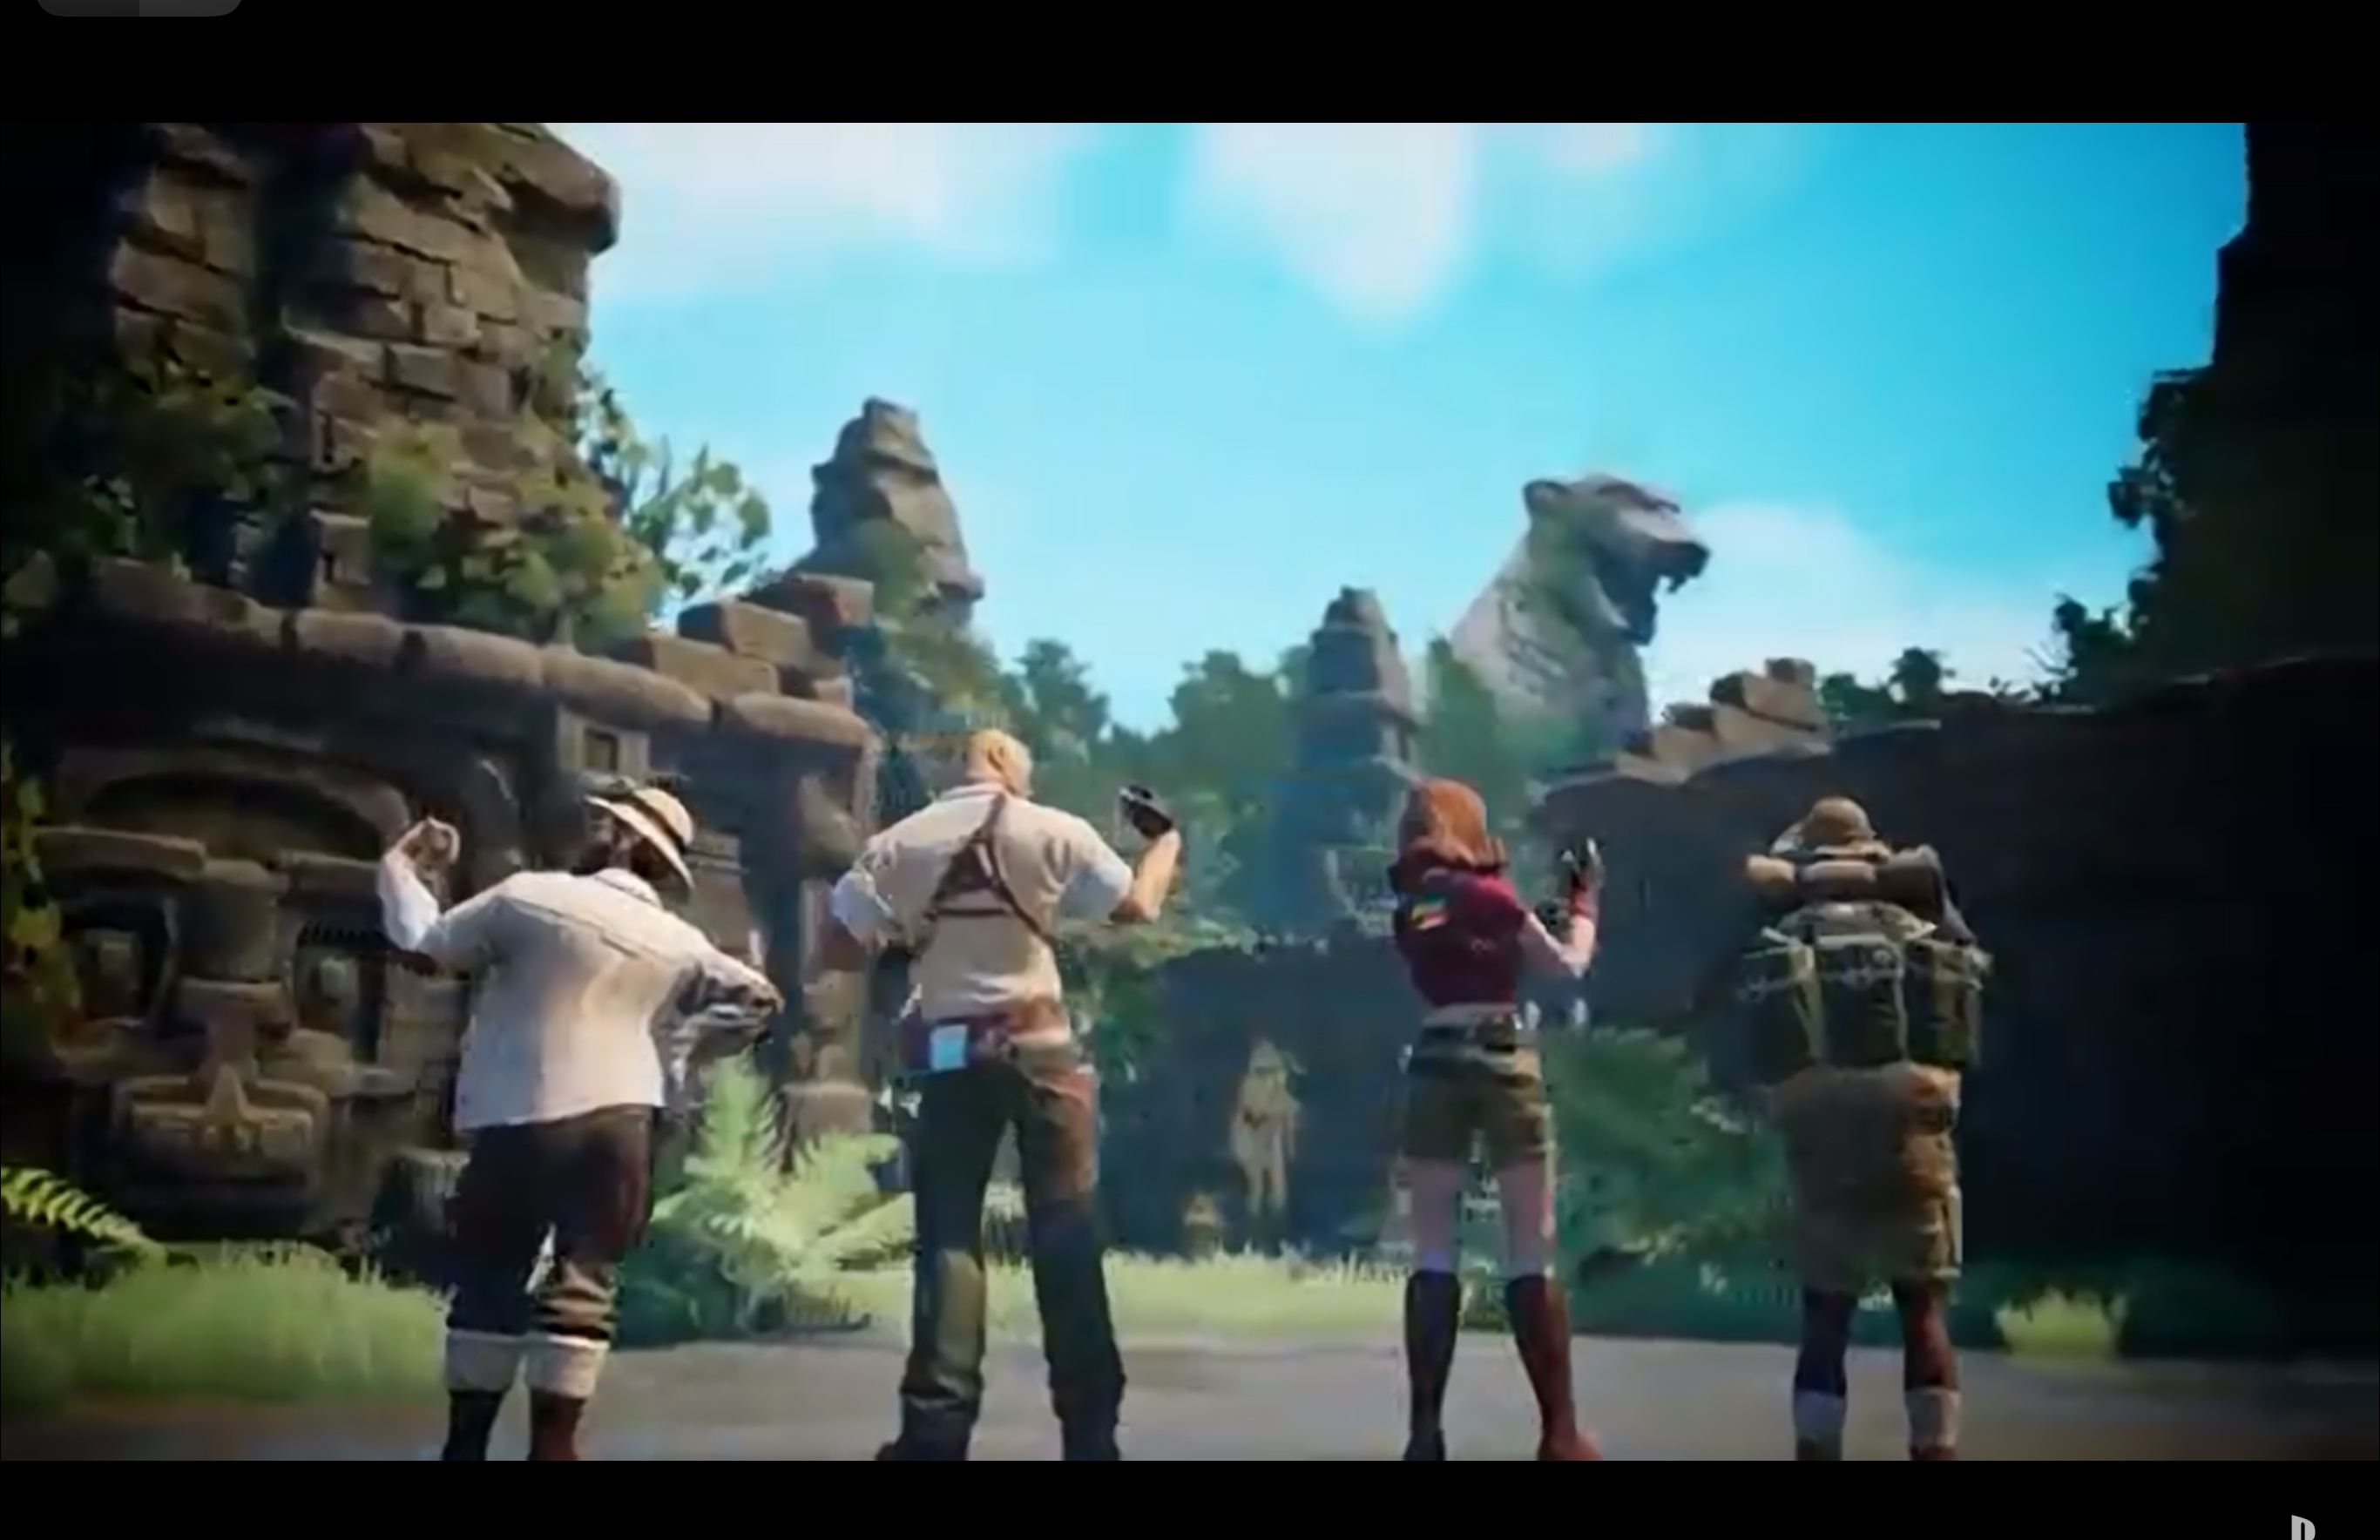 A Recent Trailer From PlayStation Confirms JUMANJI: The Video Game; Features Characters From The 2017 Movie